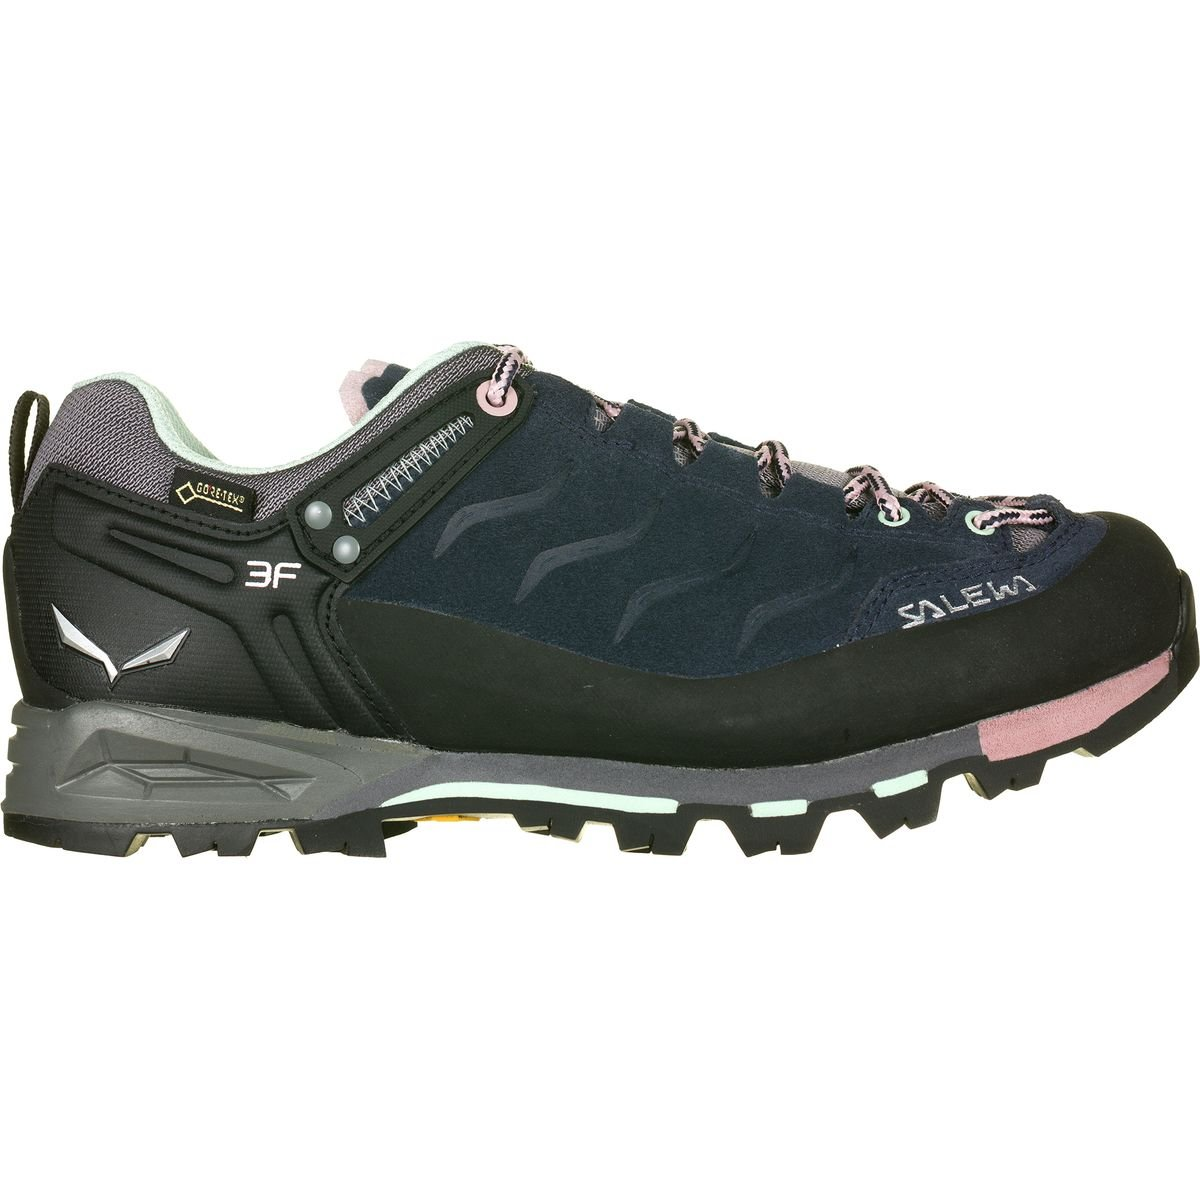 Salewa Womens' WS Mtn Trainer GTX-W, Premium Navy/Subtle Green, 8.5 B(M) US by Salewa